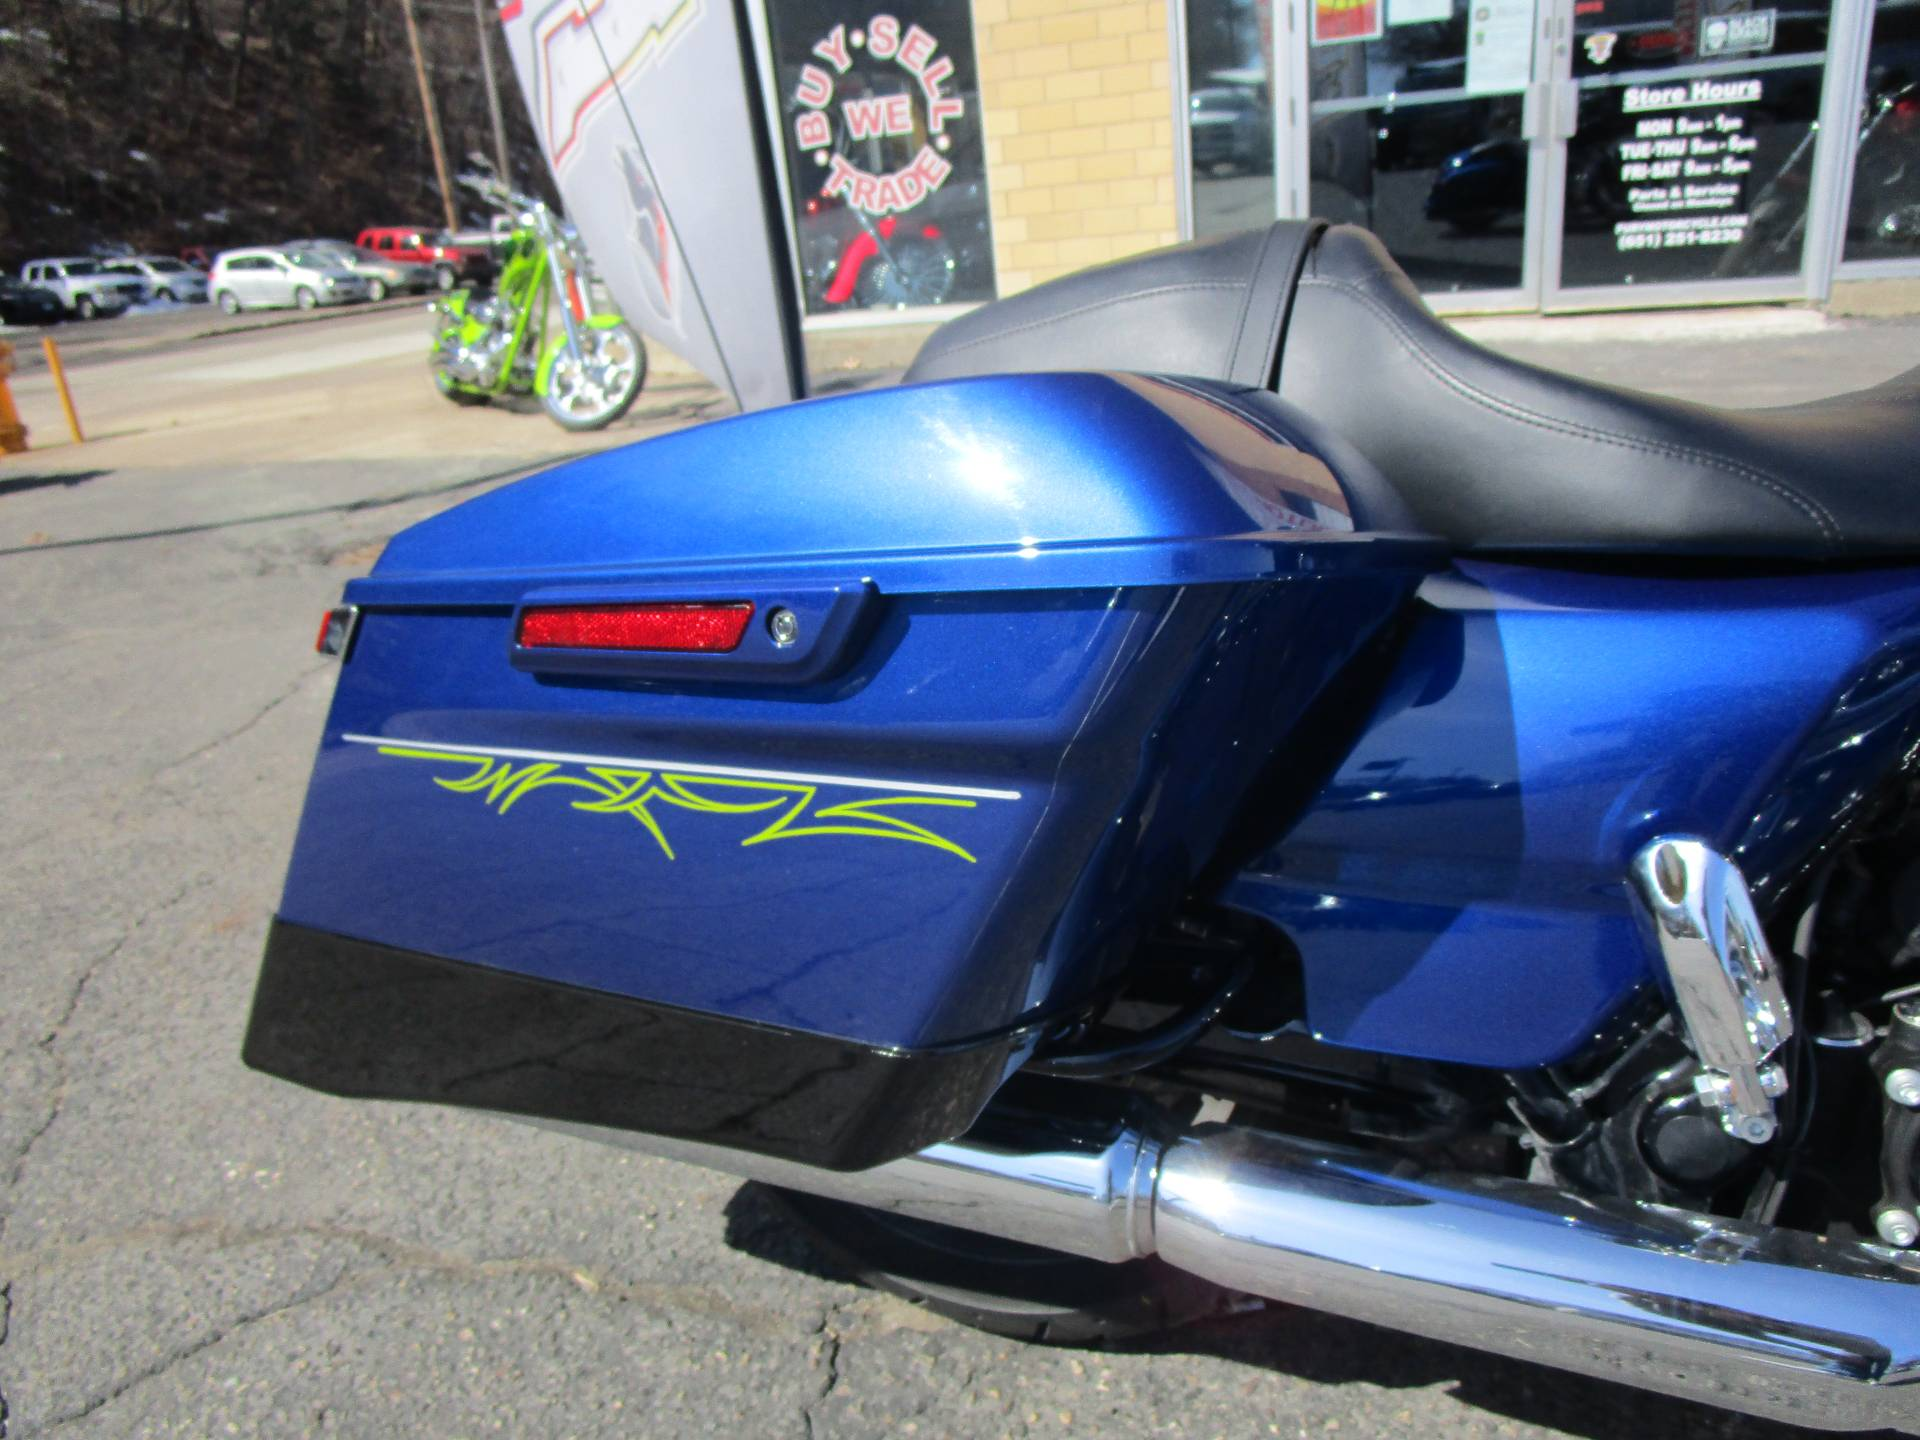 2017 Harley-Davidson Road Glide® Special in South Saint Paul, Minnesota - Photo 7